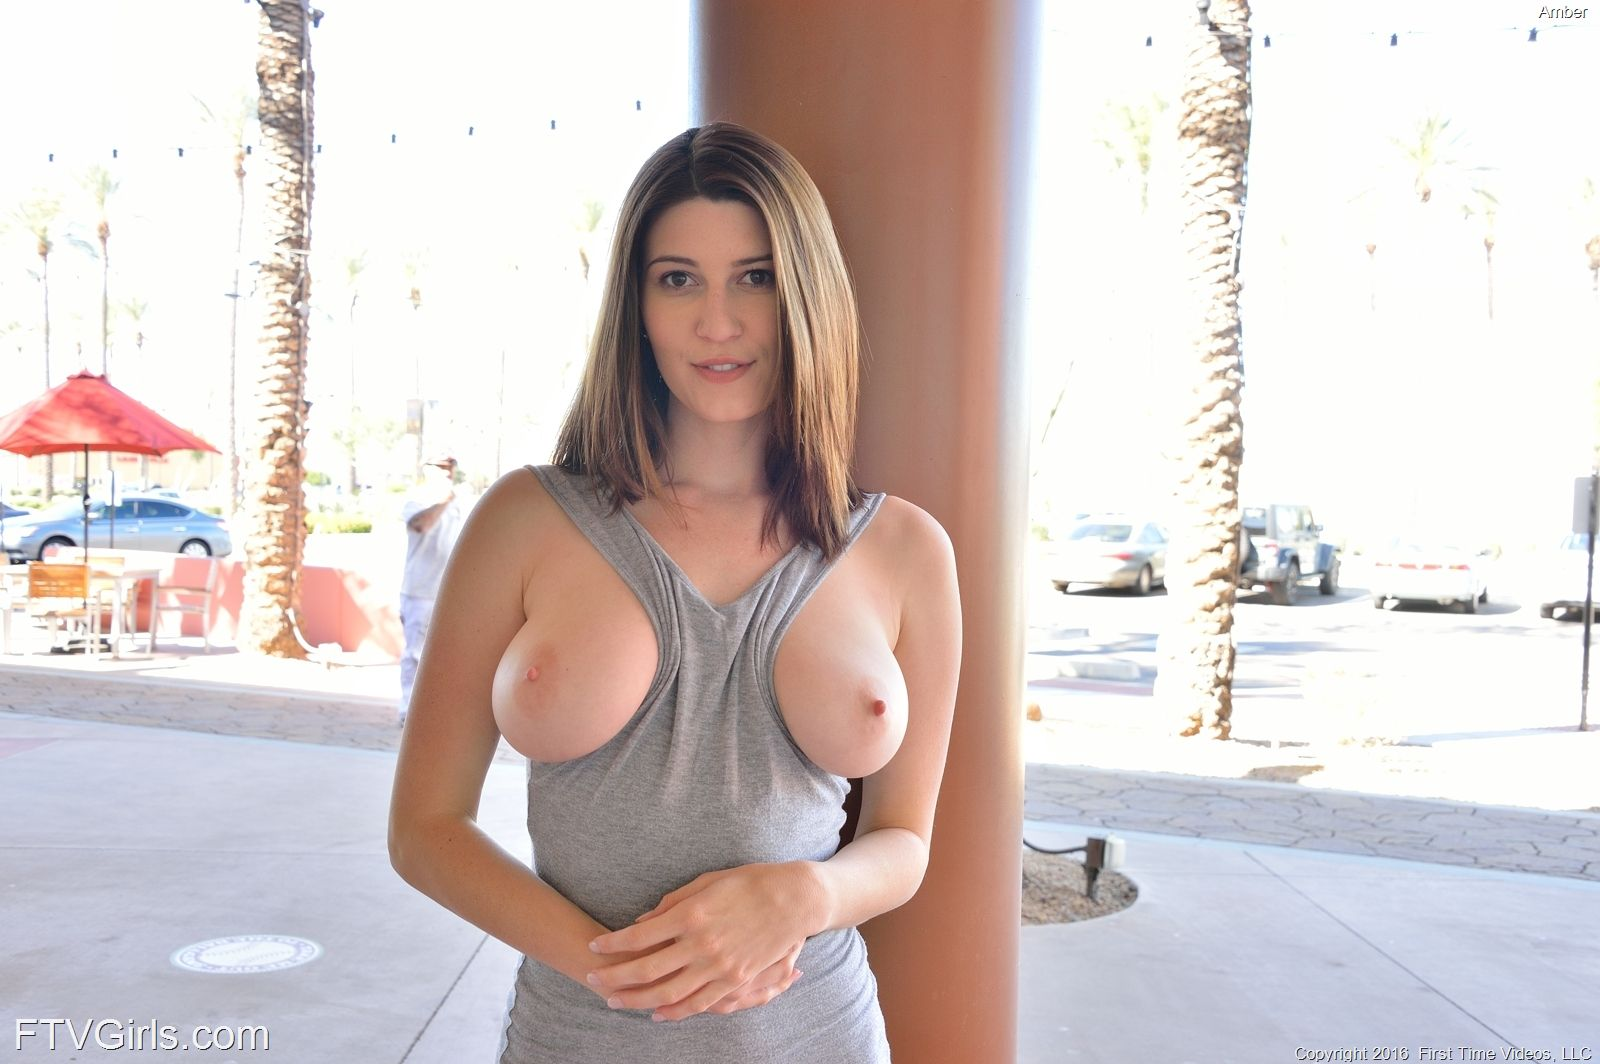 Amber - PERFECT CURVES 01